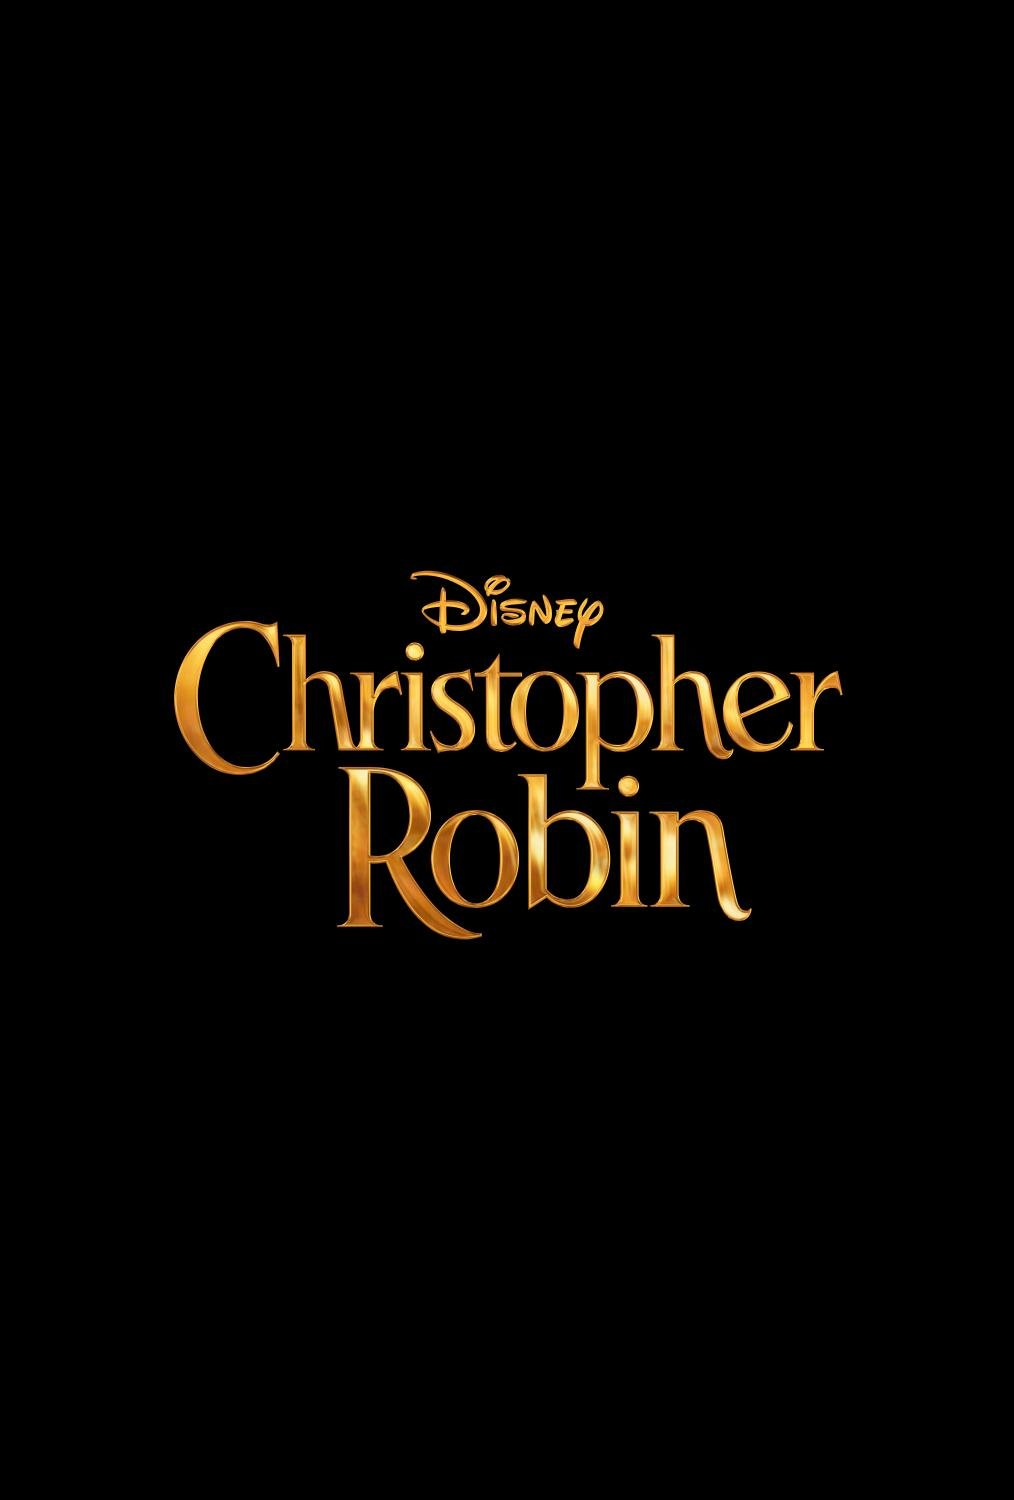 ChristopherRobin DISNEY